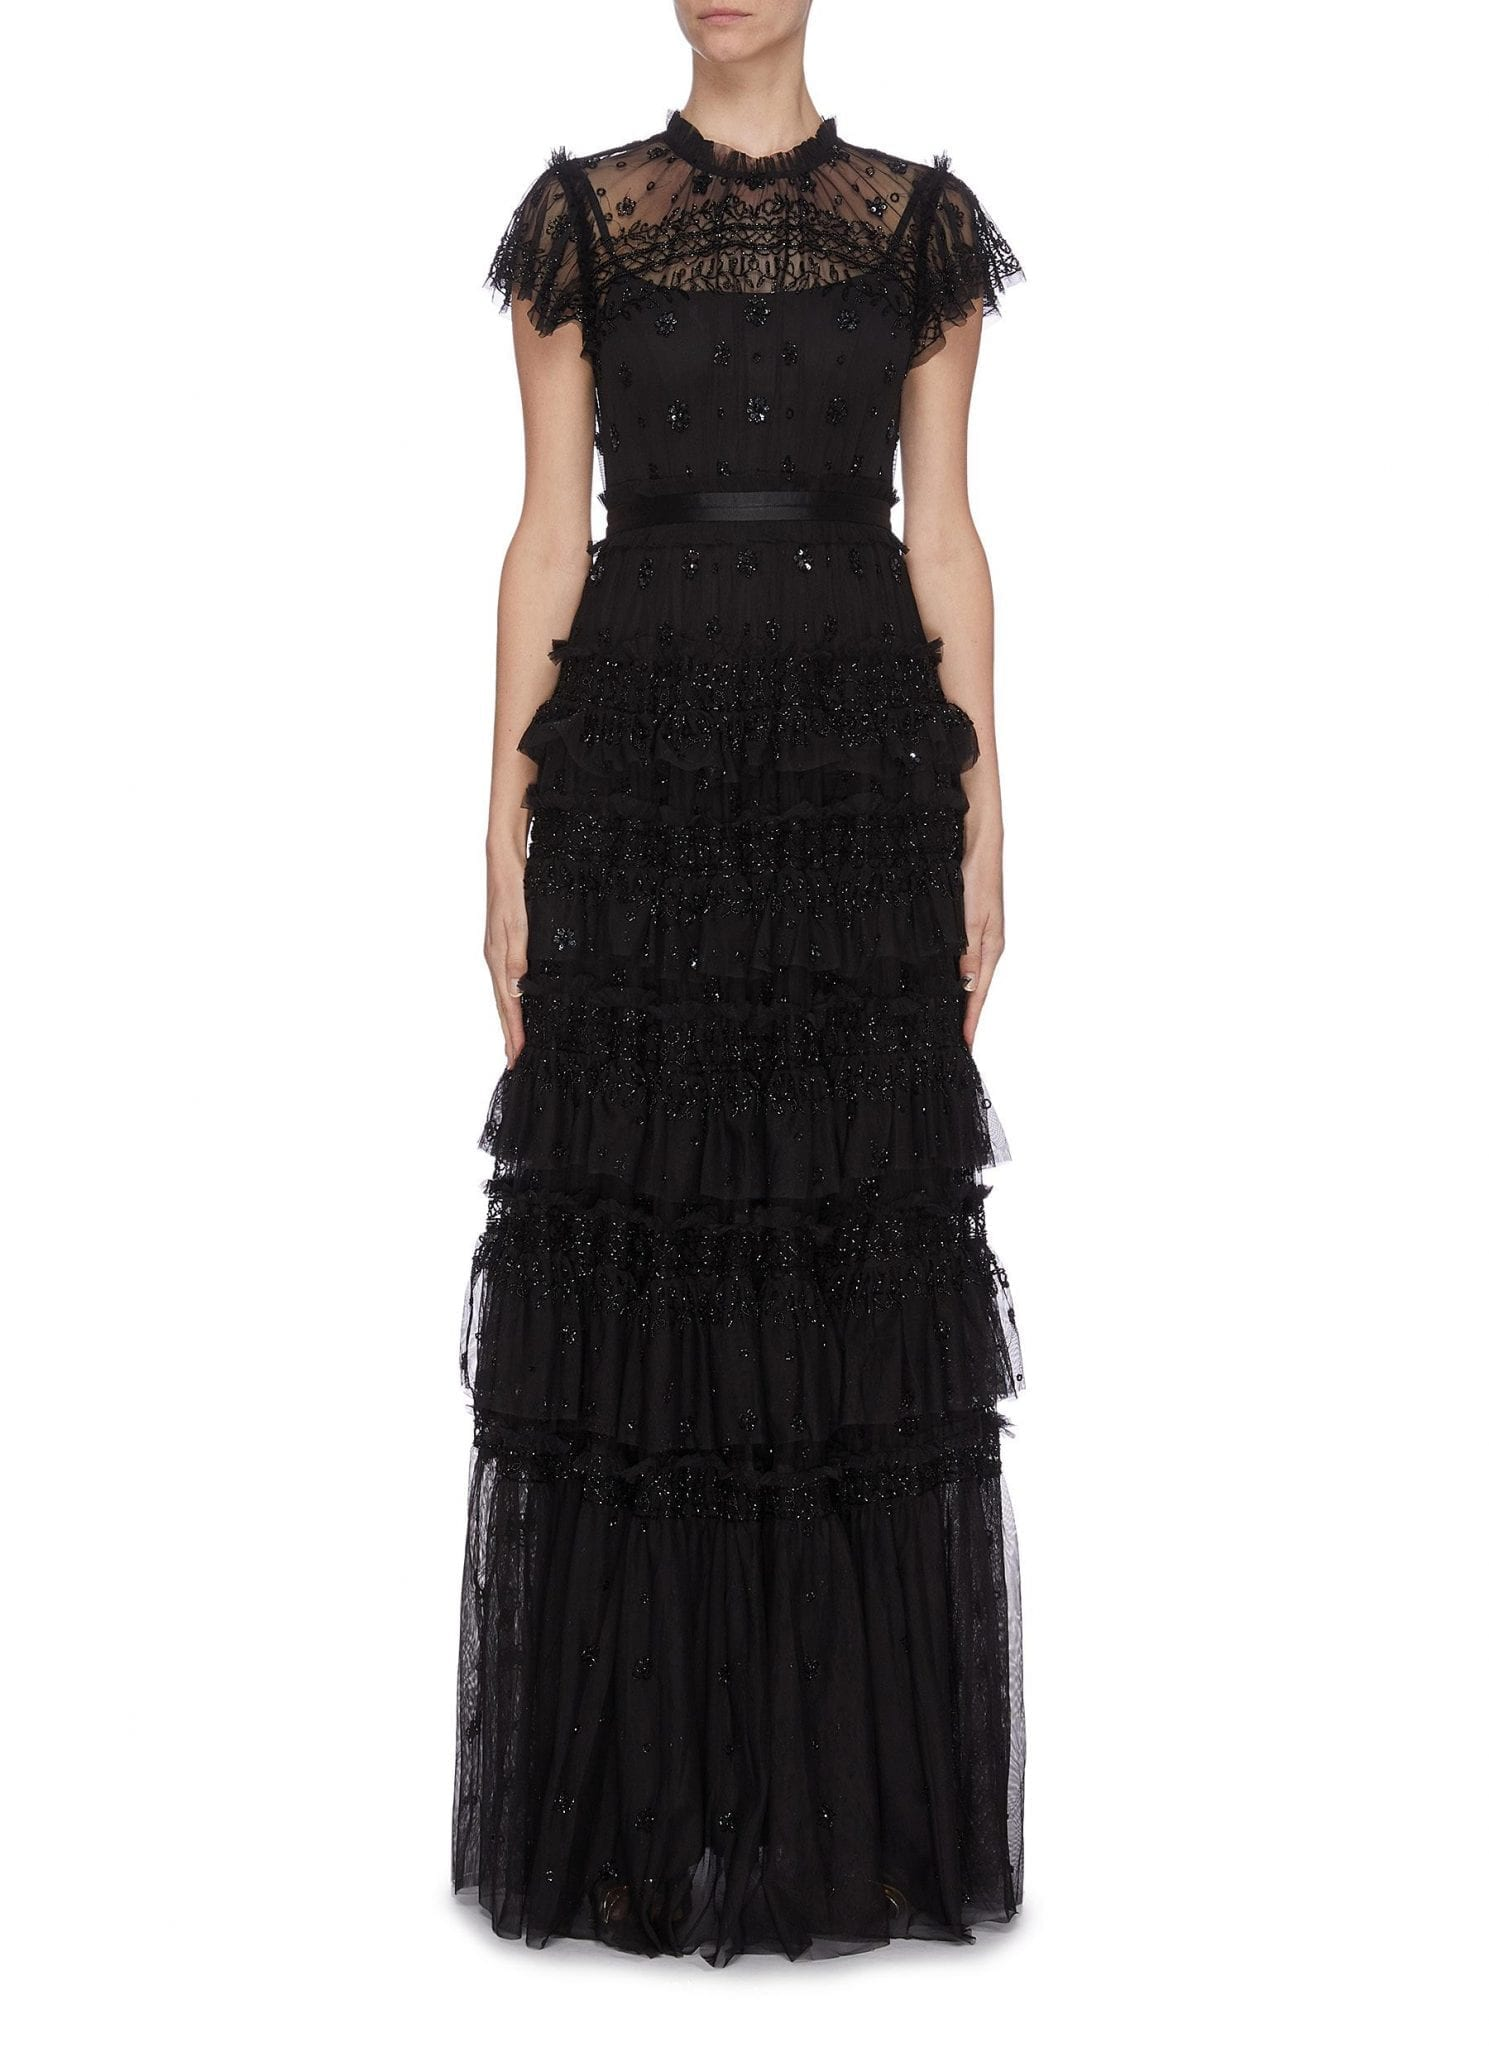 NEEDLE & THREAD 'Andromeda' Sequin Embellished Lace Trim Ruffle Tiered Tulle Gown